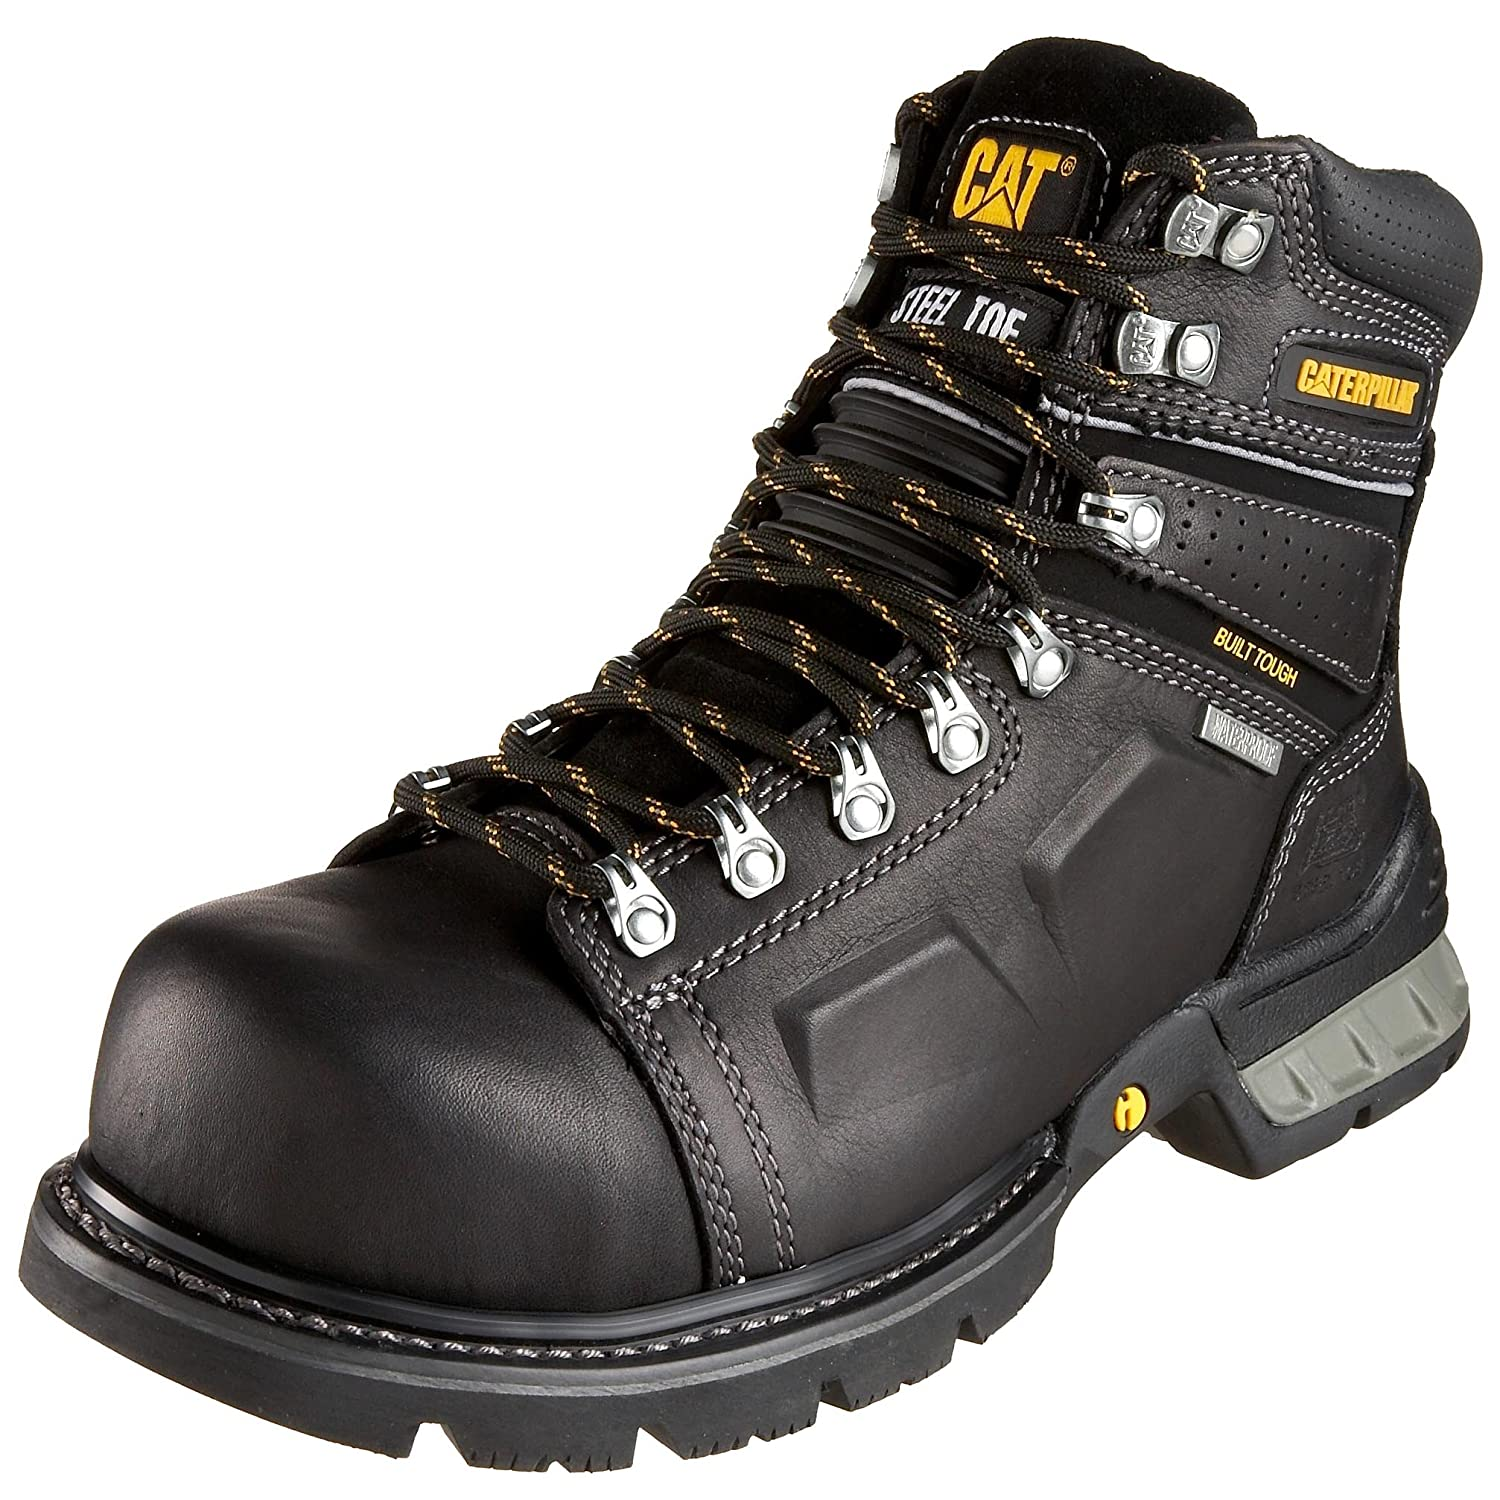 Cat Work Boots For Men - Yu Boots